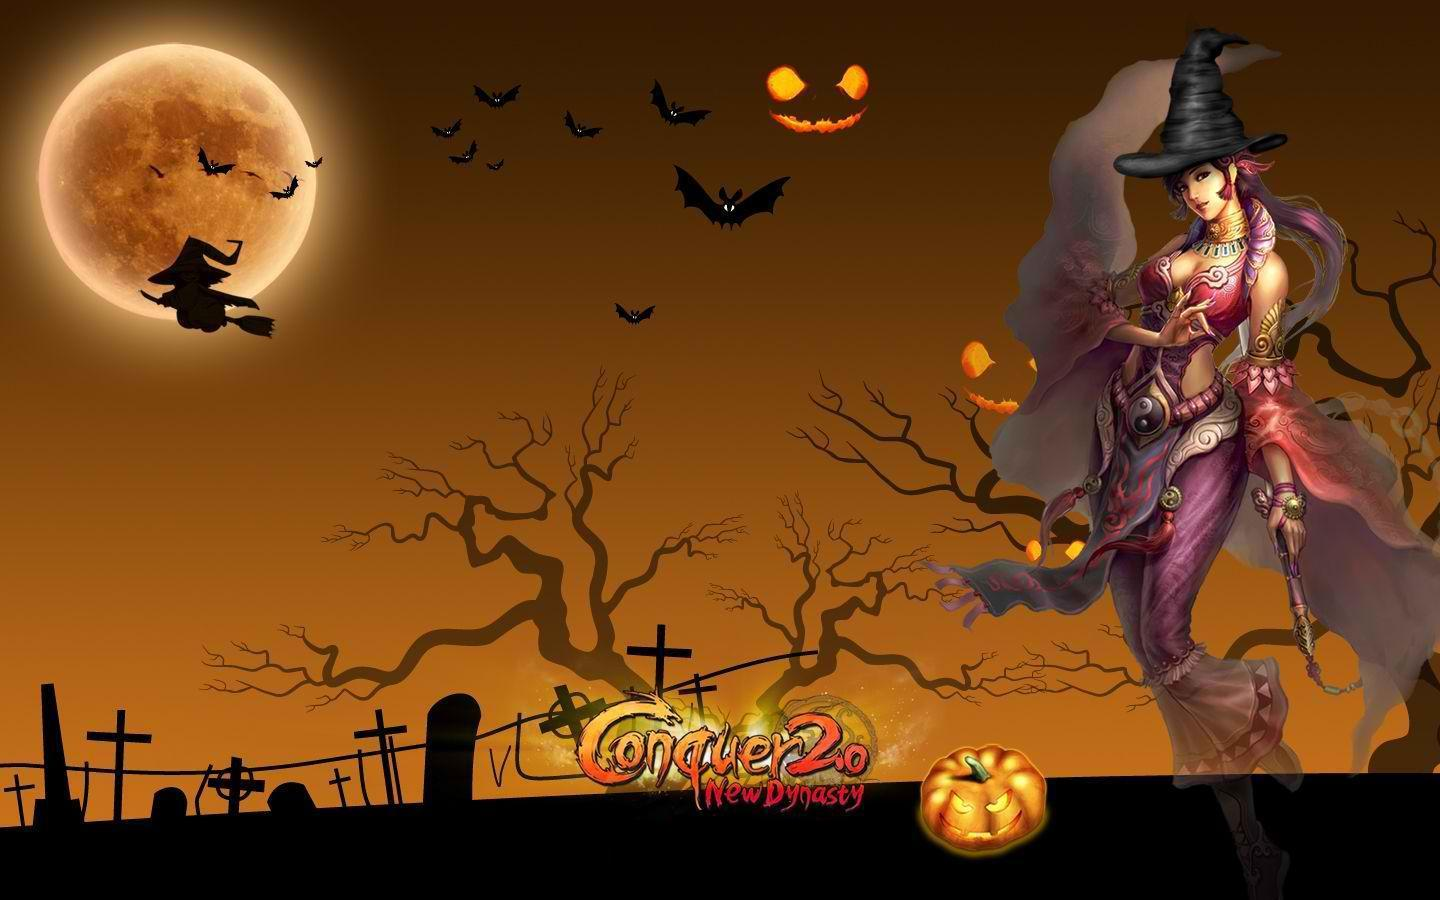 Photo Collection Halloween Witch Wallpaper Resolution 1440 X 900